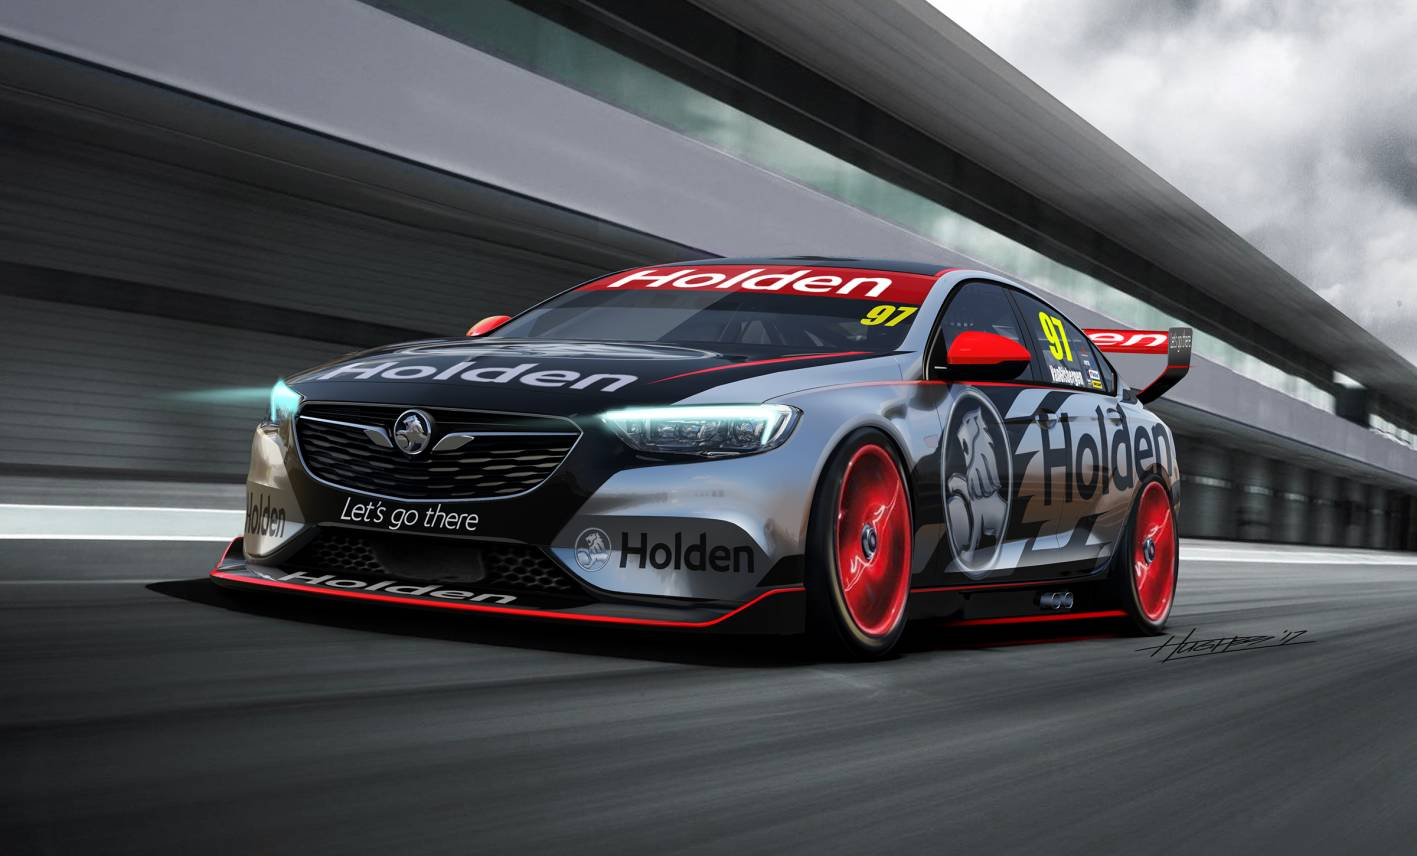 Holden Commodore V8 Supercar revealed